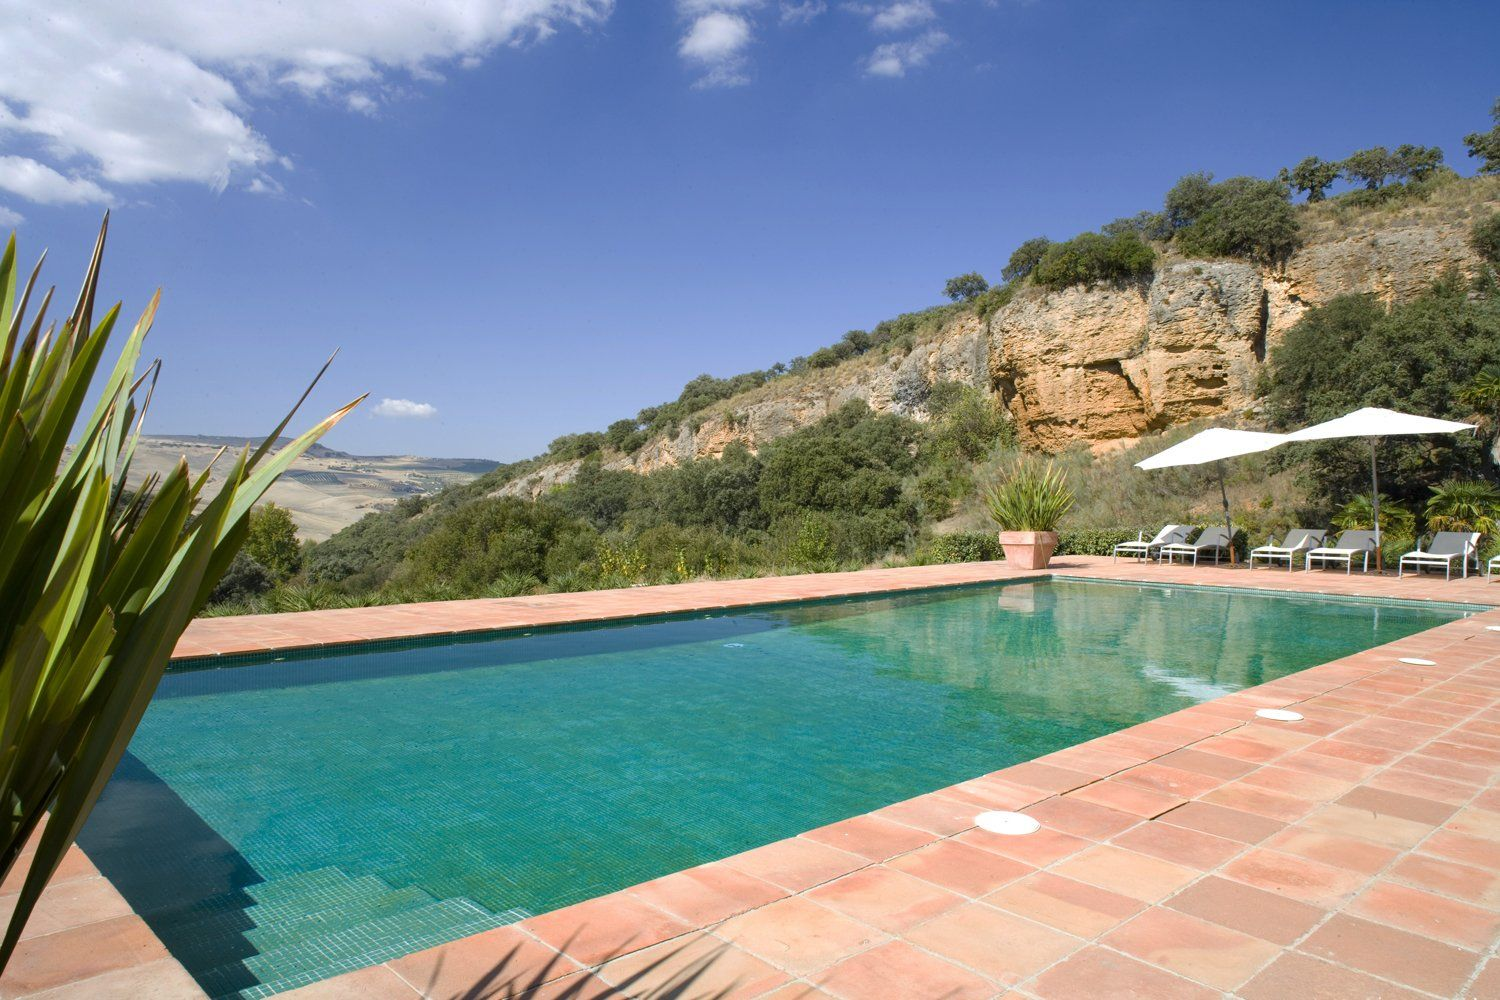 pool and escarpment